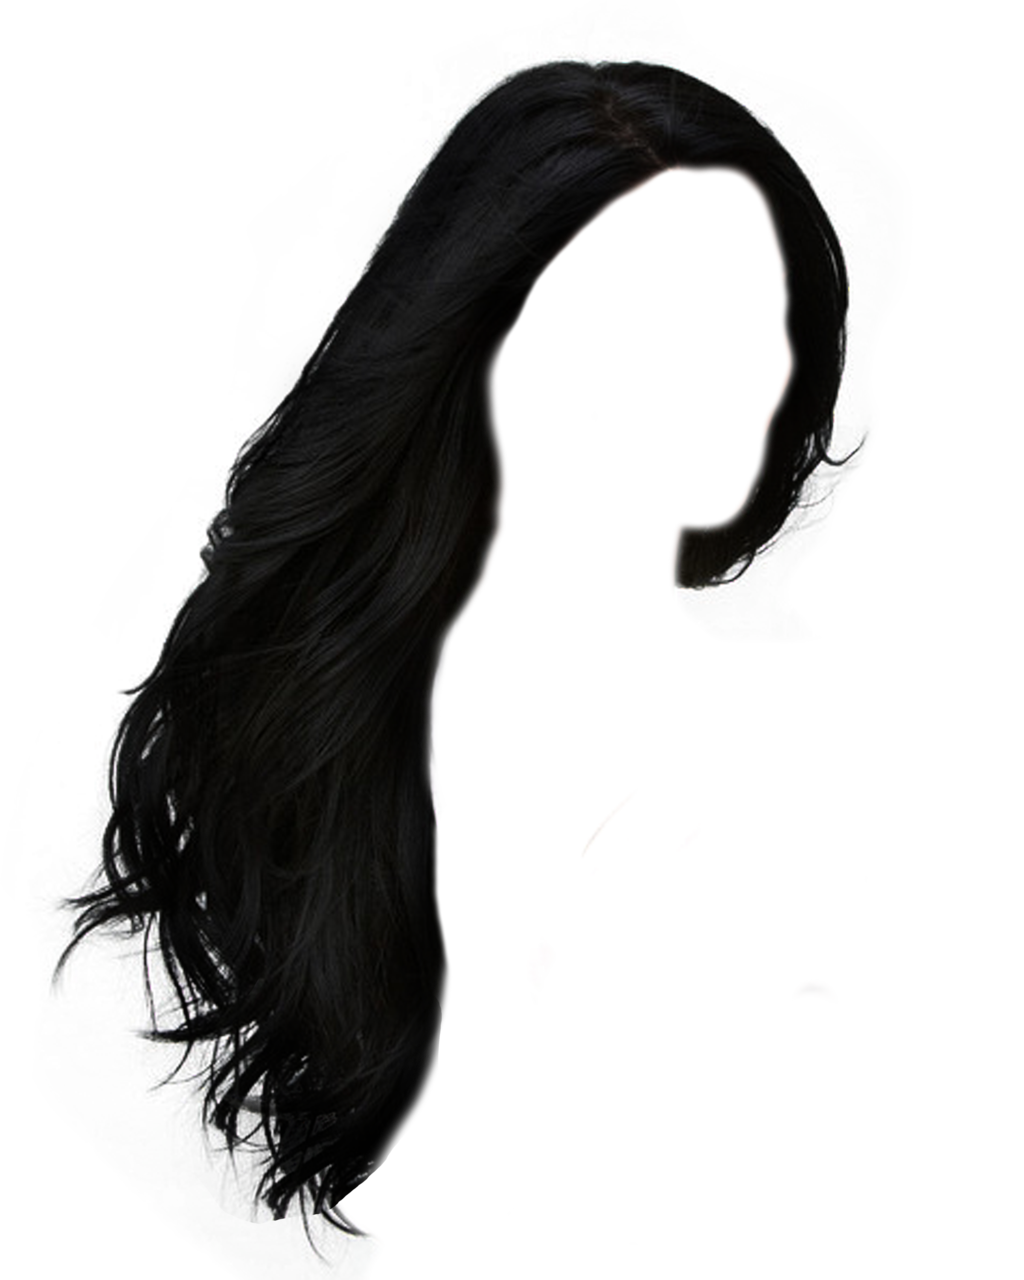 Hairstyles Png Hd PNG Image - Hair HD PNG